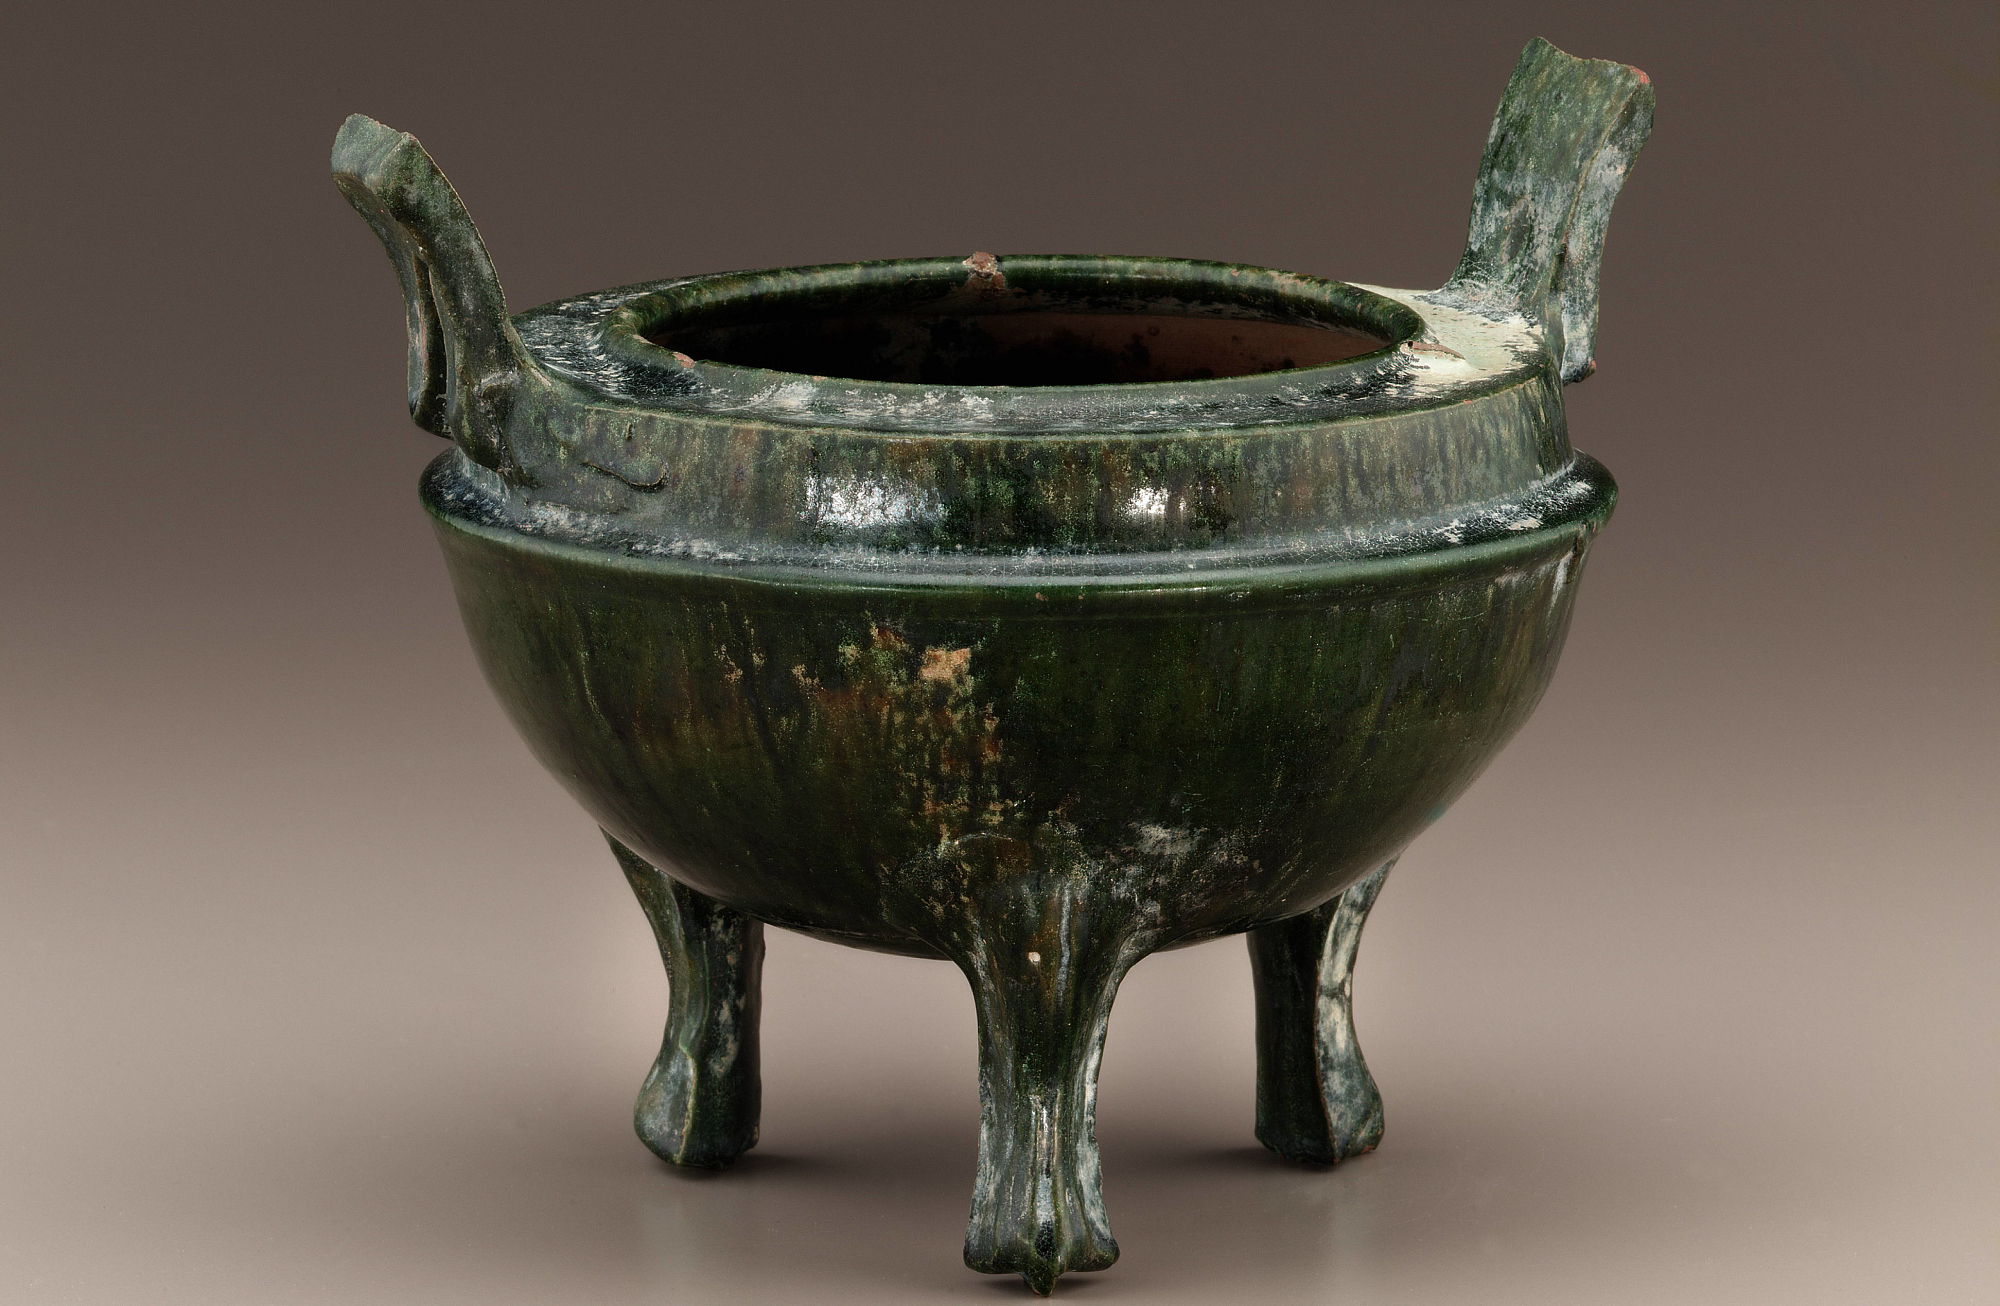 profile: Tomb tripod vessel